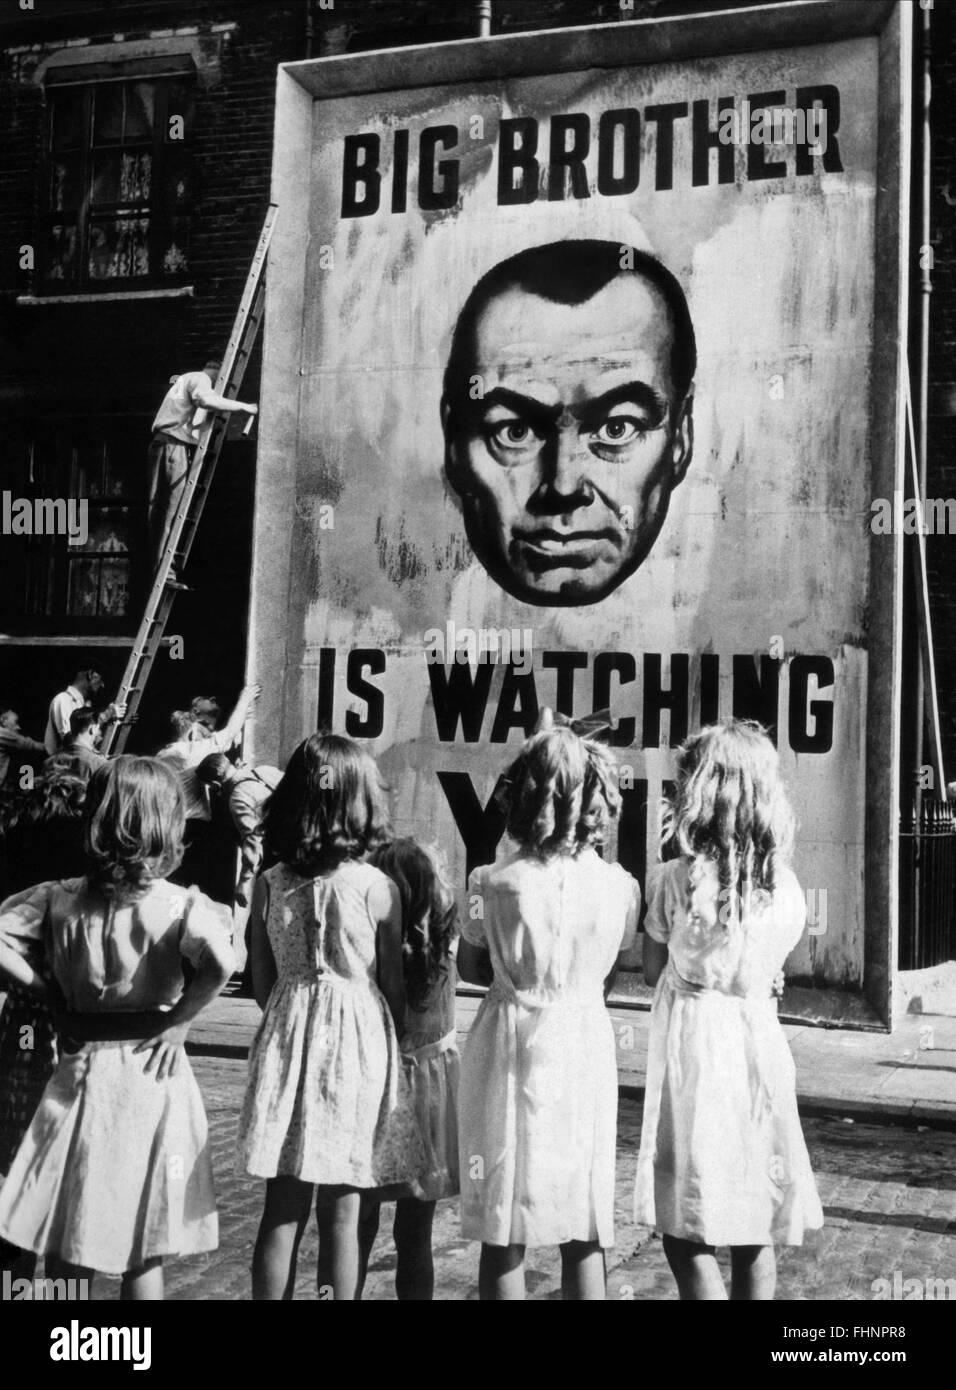 BIG BROTHER IS WATCHING POSTER 1984; NINETEEN EIGHTY-FOUR (1956) Stock Photo